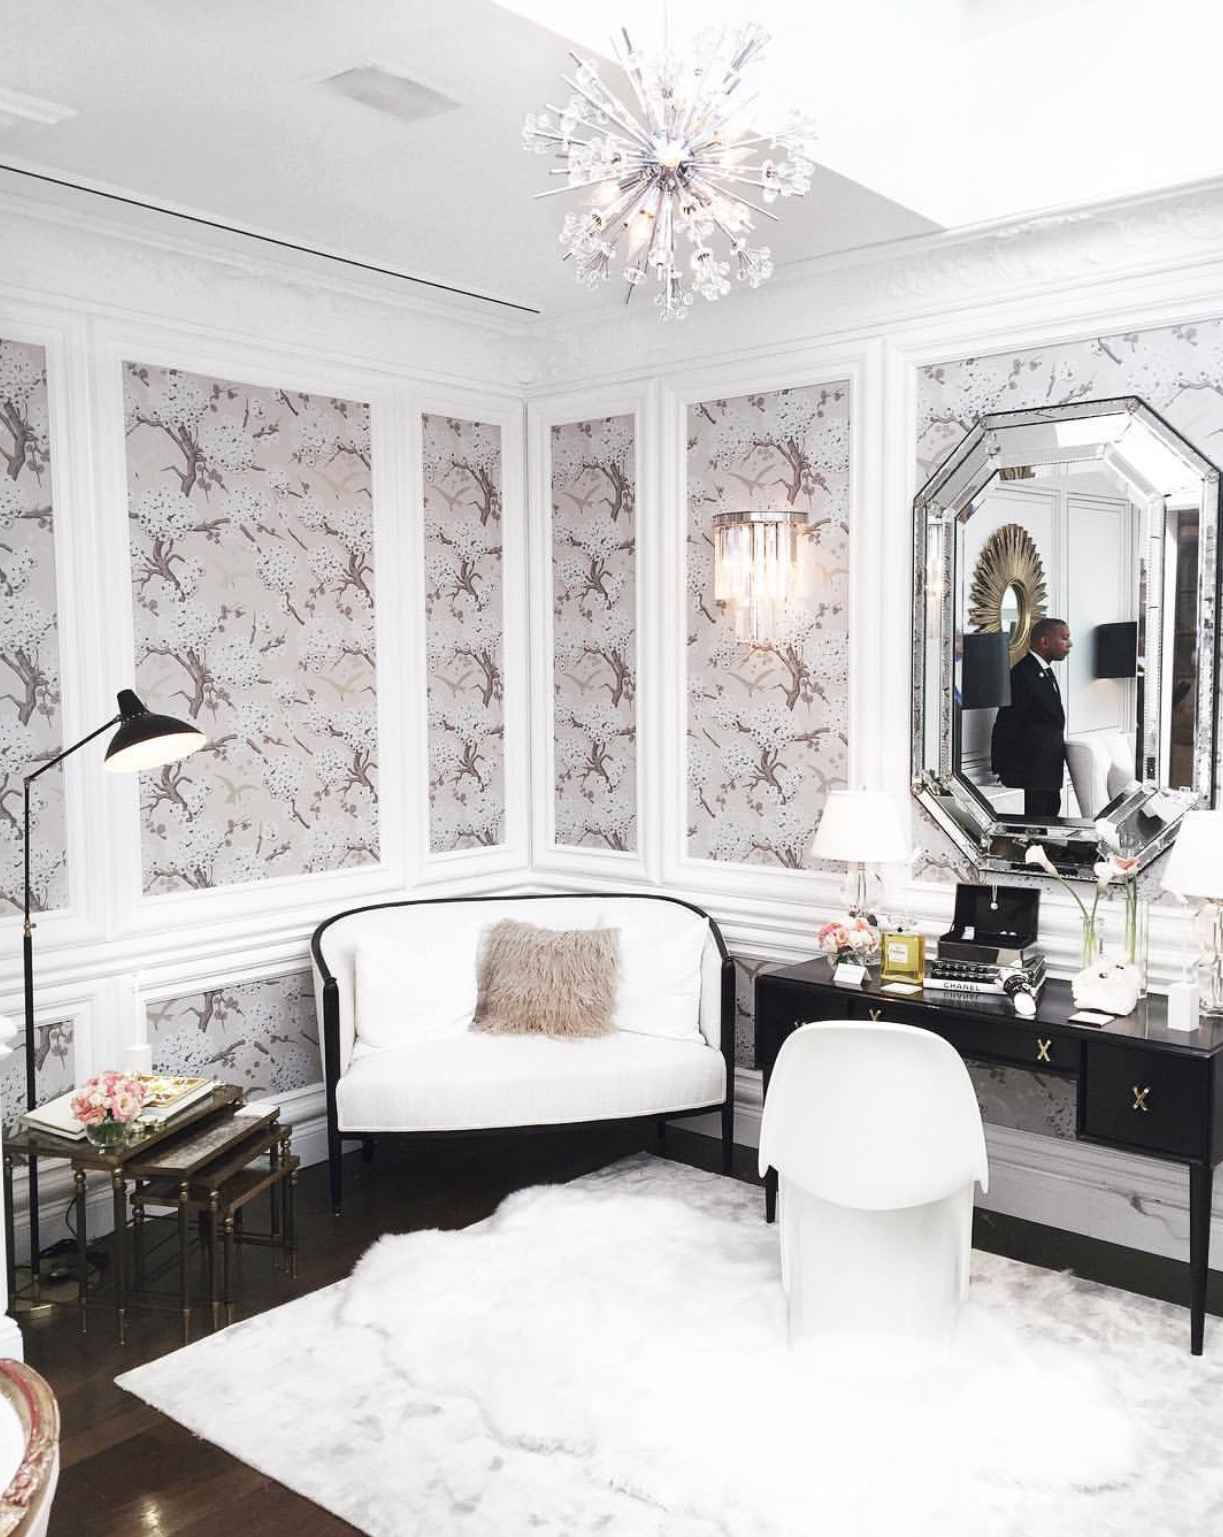 7 Decorating Rules Inspired By Coco Chanel Ashlina Kaposta